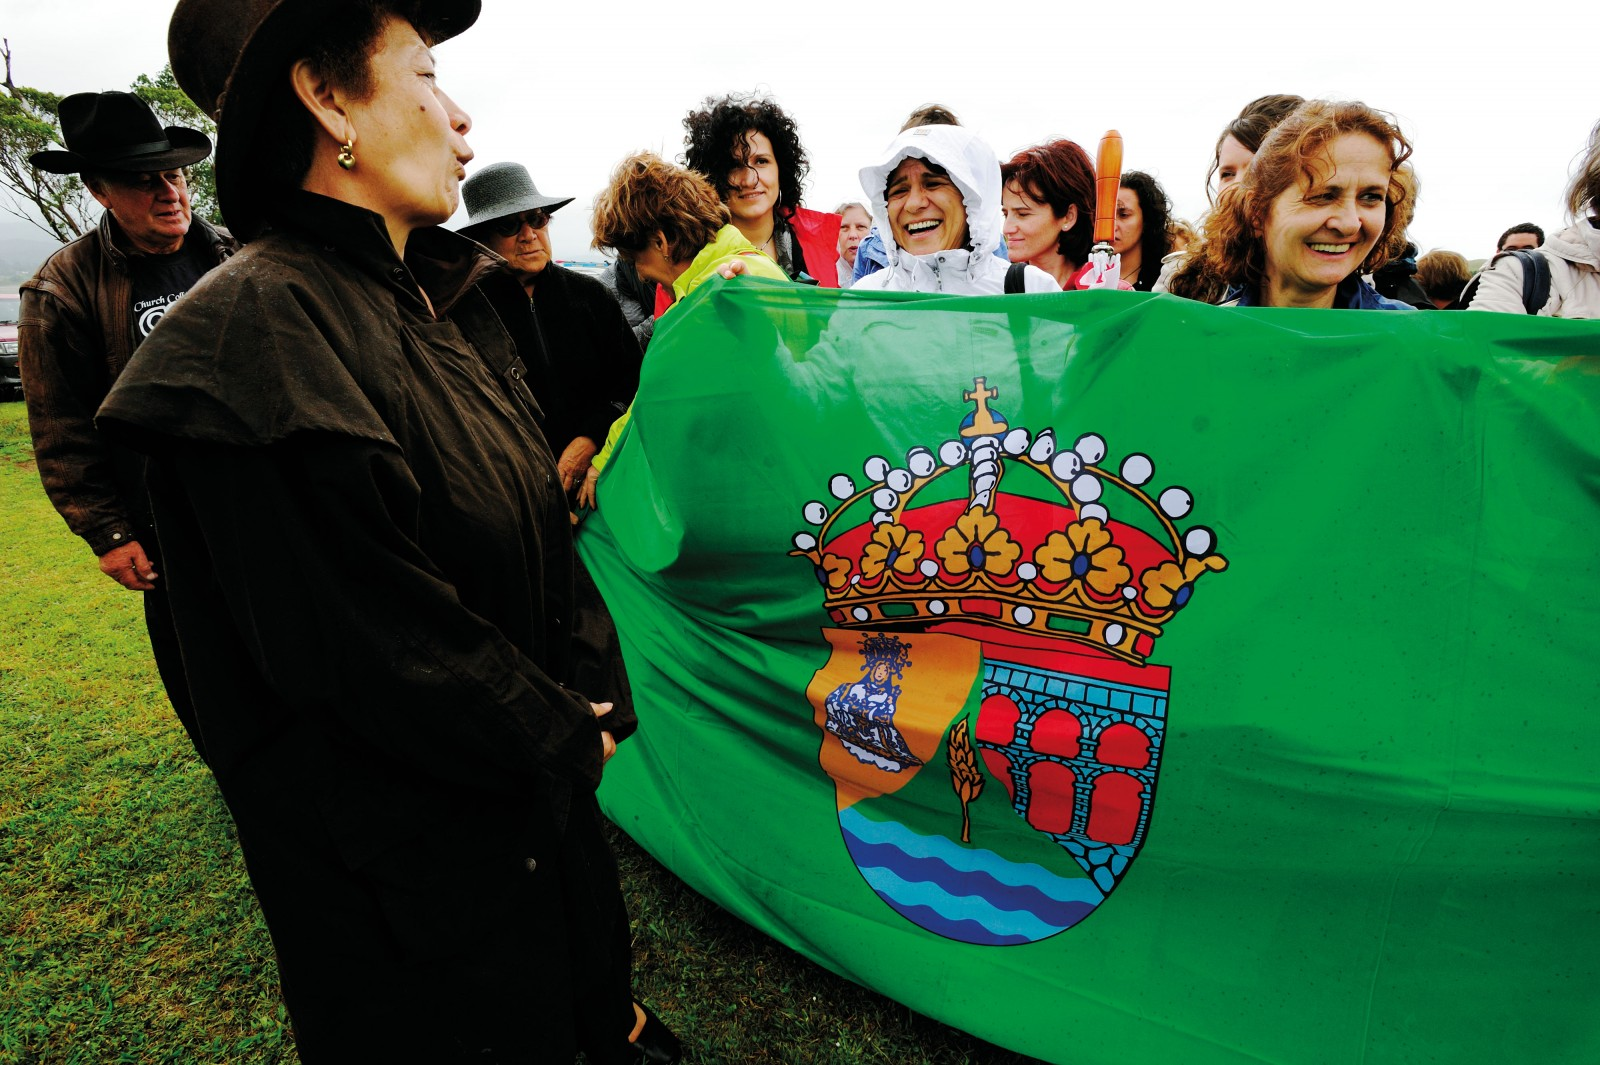 In step with the Maori tradition of introducing yourself with the landmarks of your hometown, Spanish relatives stand behind the green Segovian flag representing the city's Roman aqueduct and river.